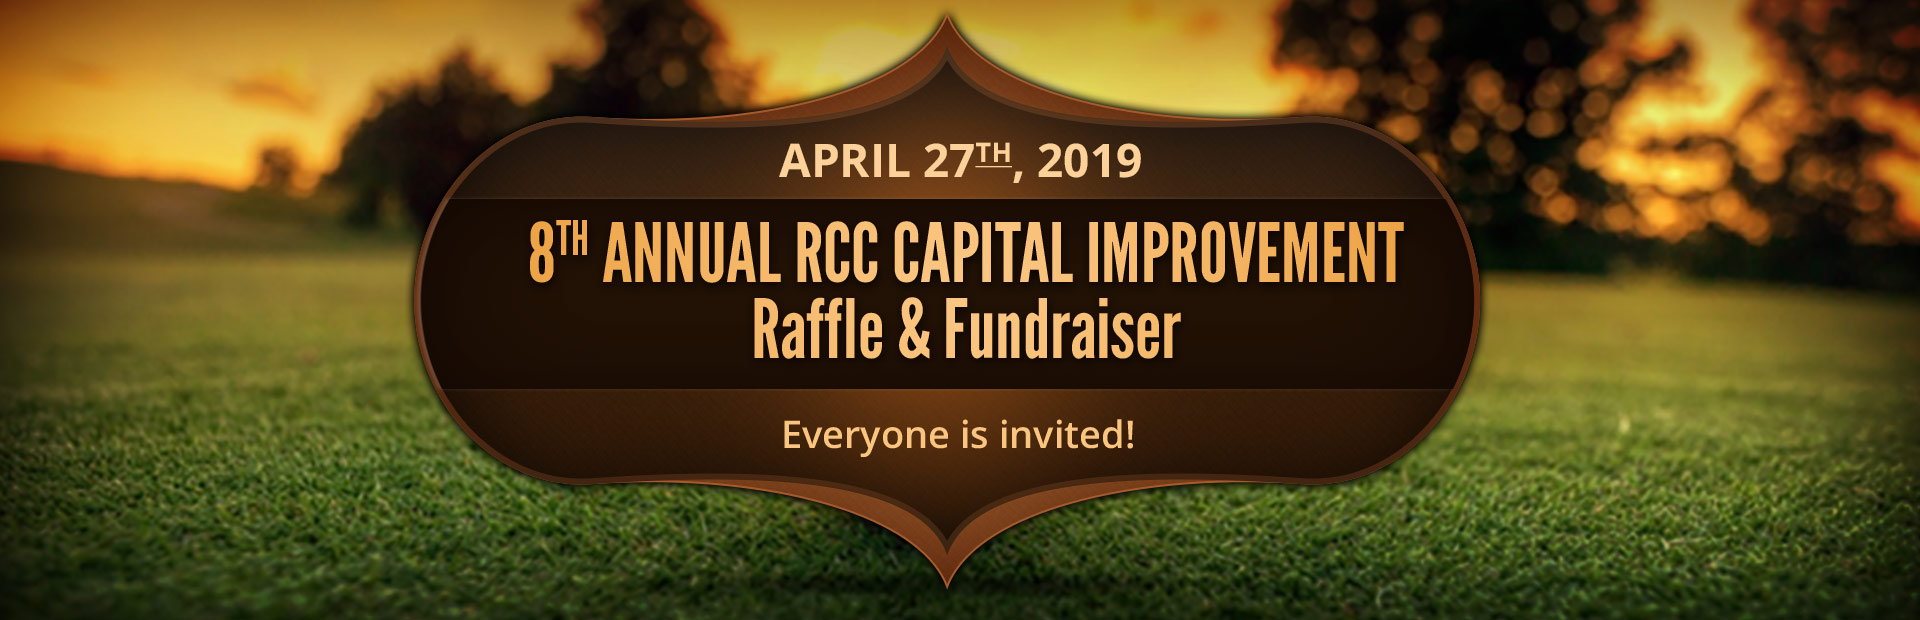 RCC Capital Improvement